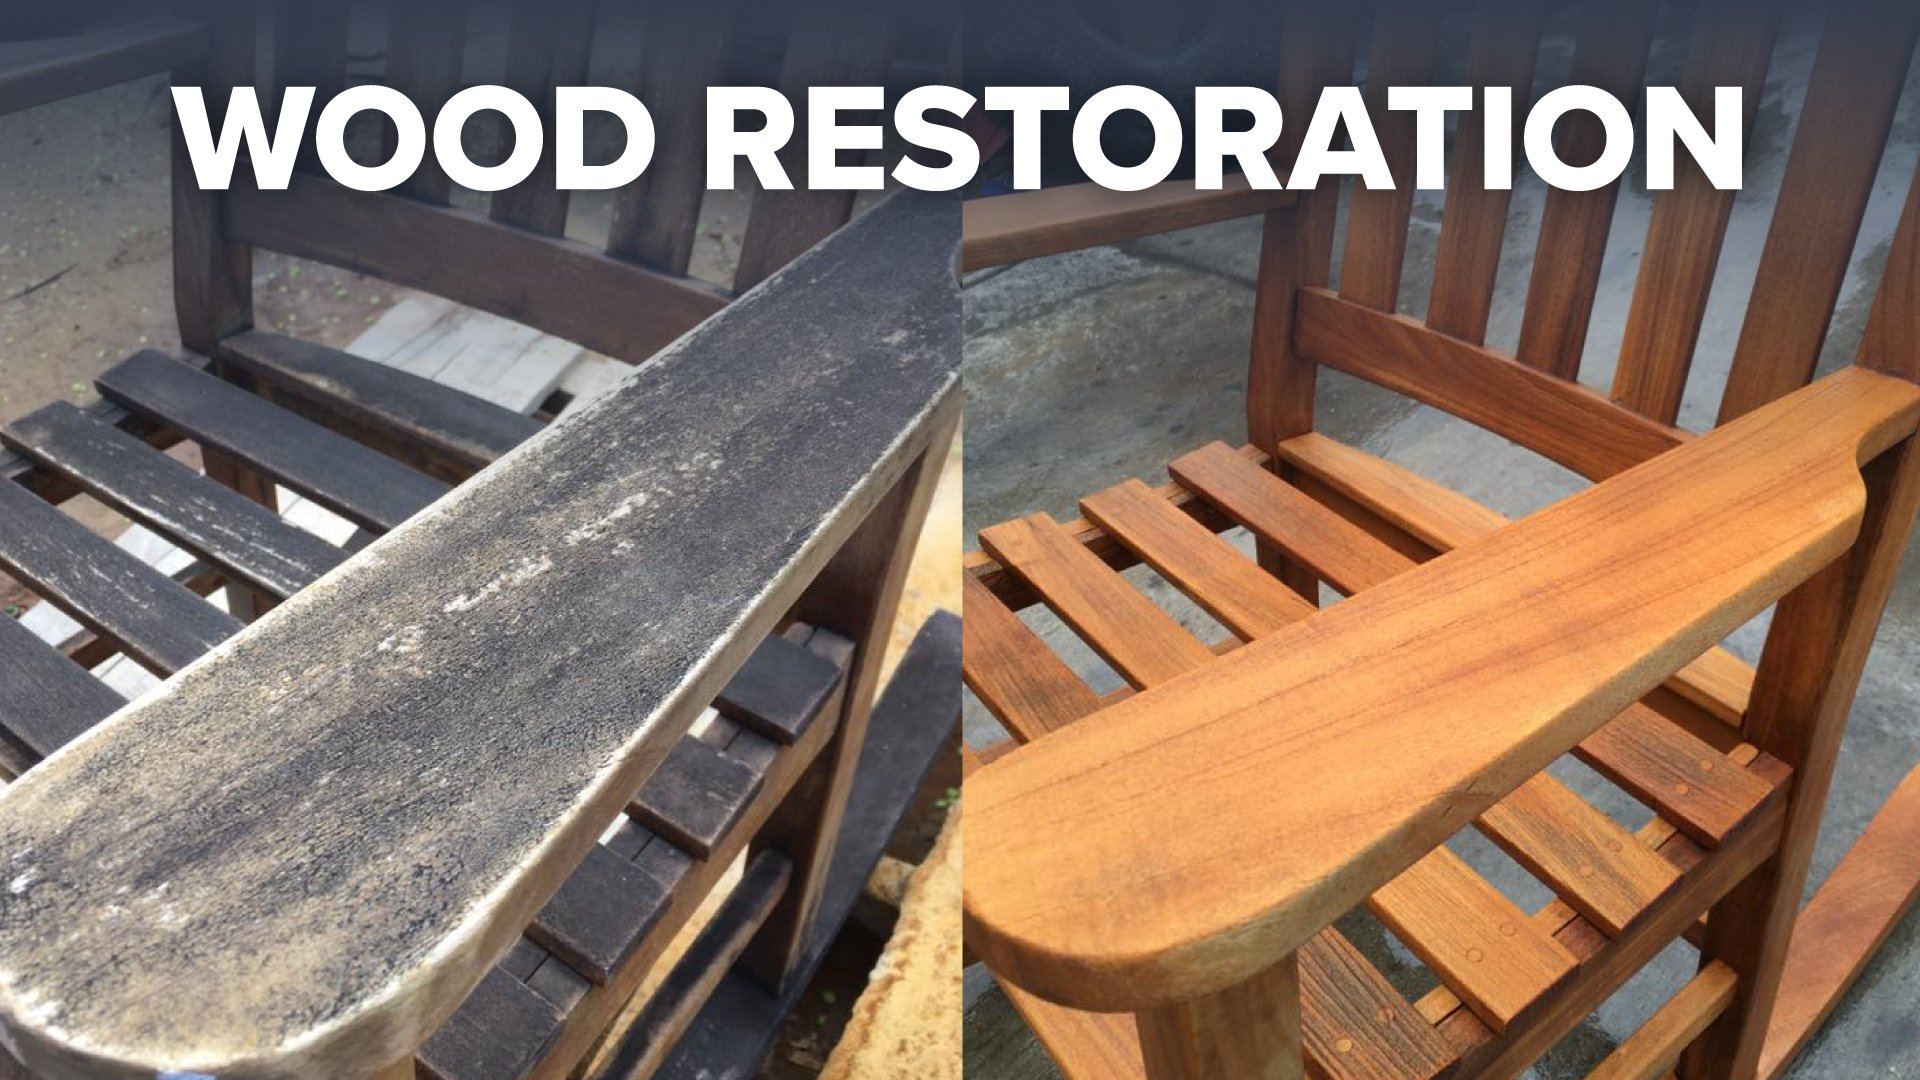 WOOD-RESTORATION-and-ETCHING-with-the-Dustless-Blaster!-Thumbnail-words